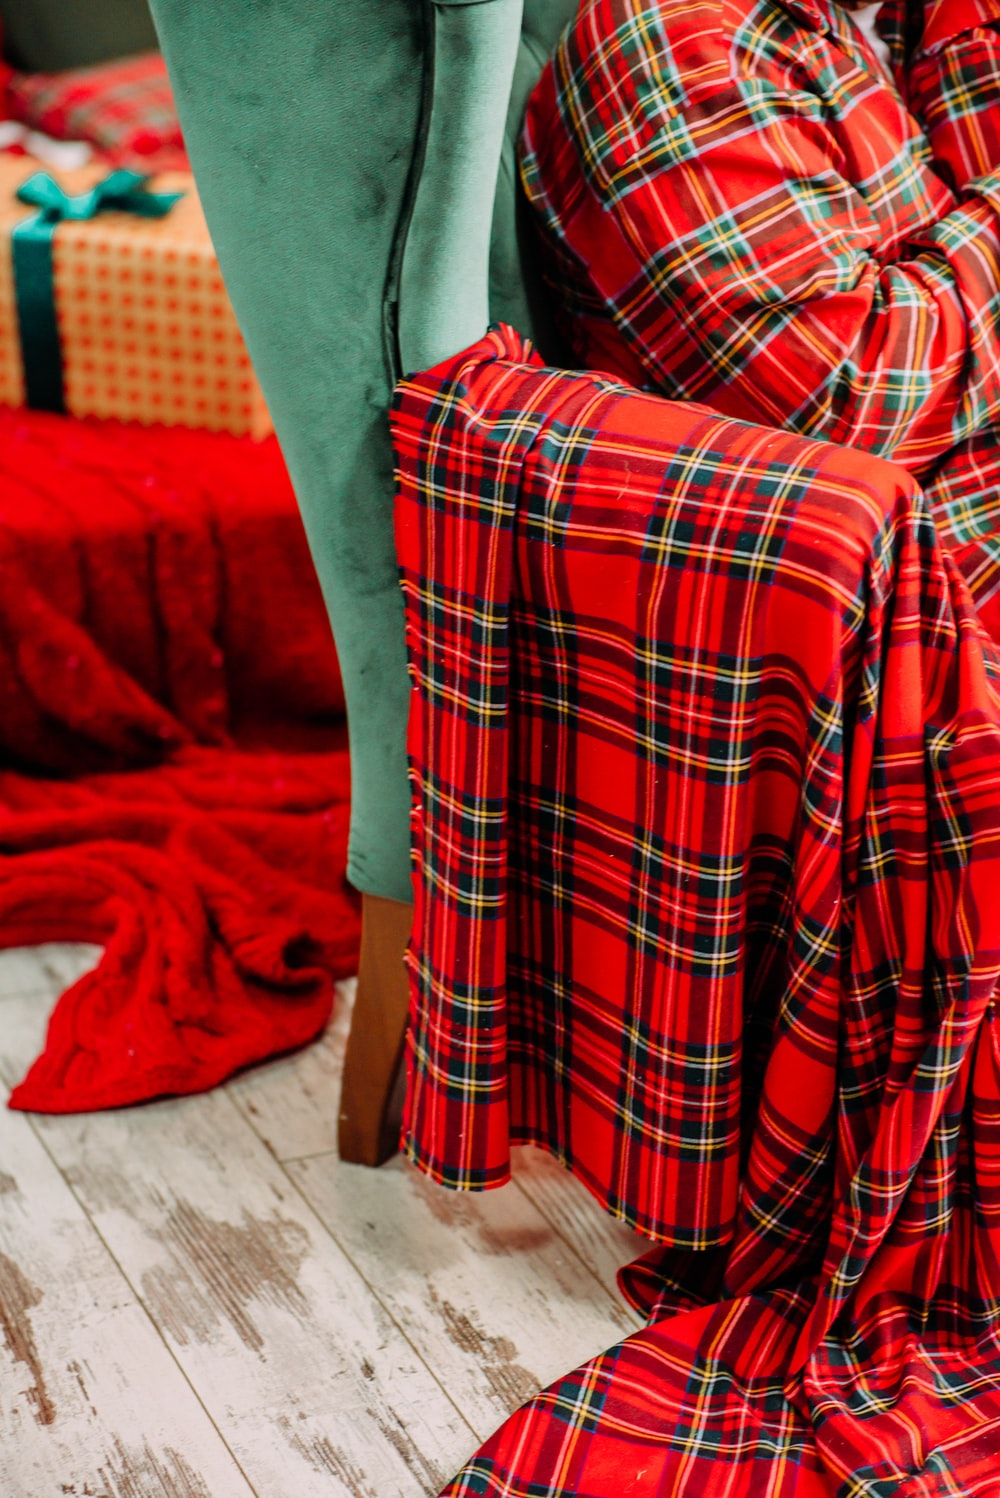 red and white plaid textile